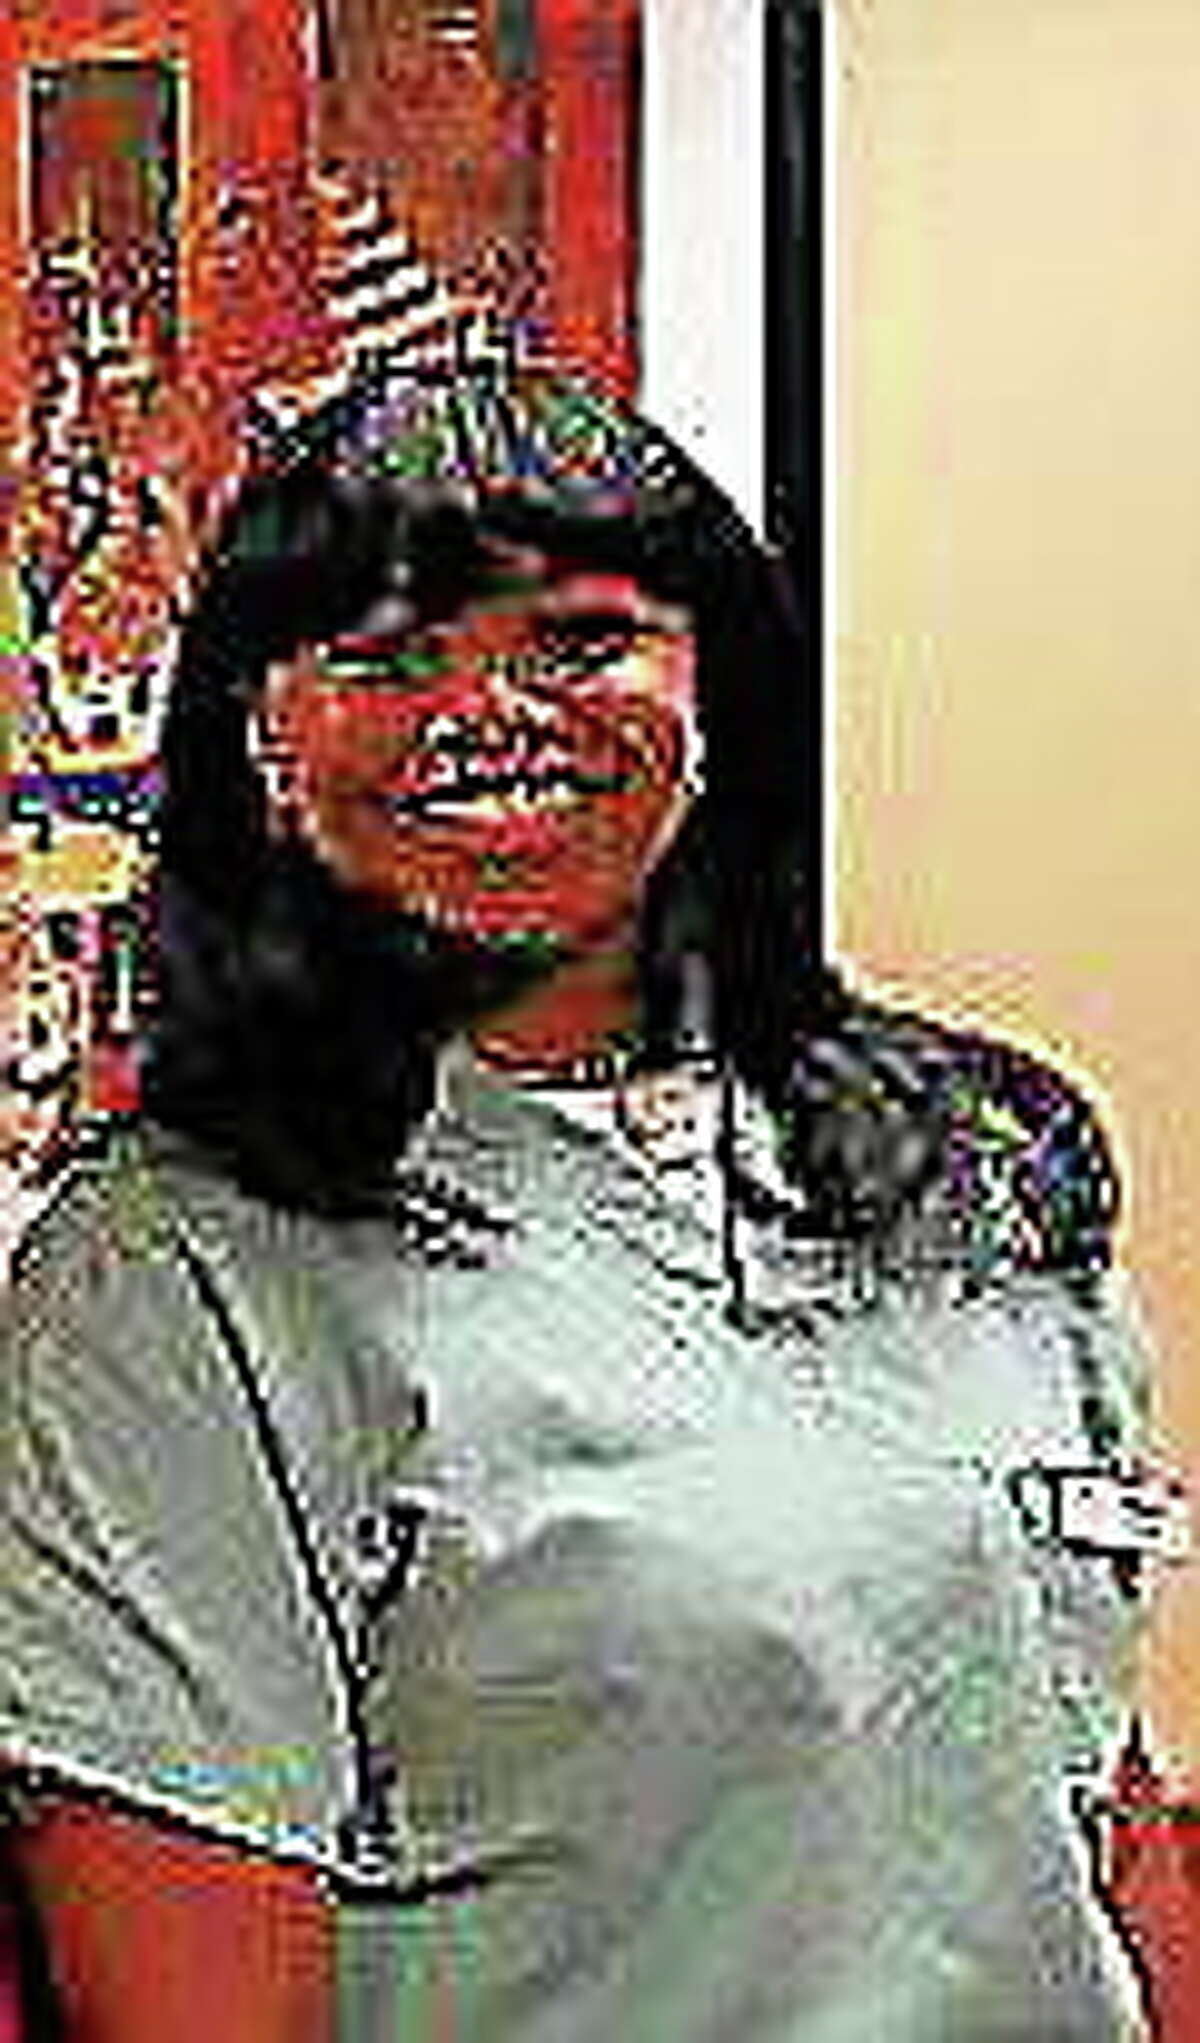 Miriam Carey, in a 2011 newsletter photo welcoming her to the staff of Advanced Periodontics in Hamden as a registered dental hygienist.